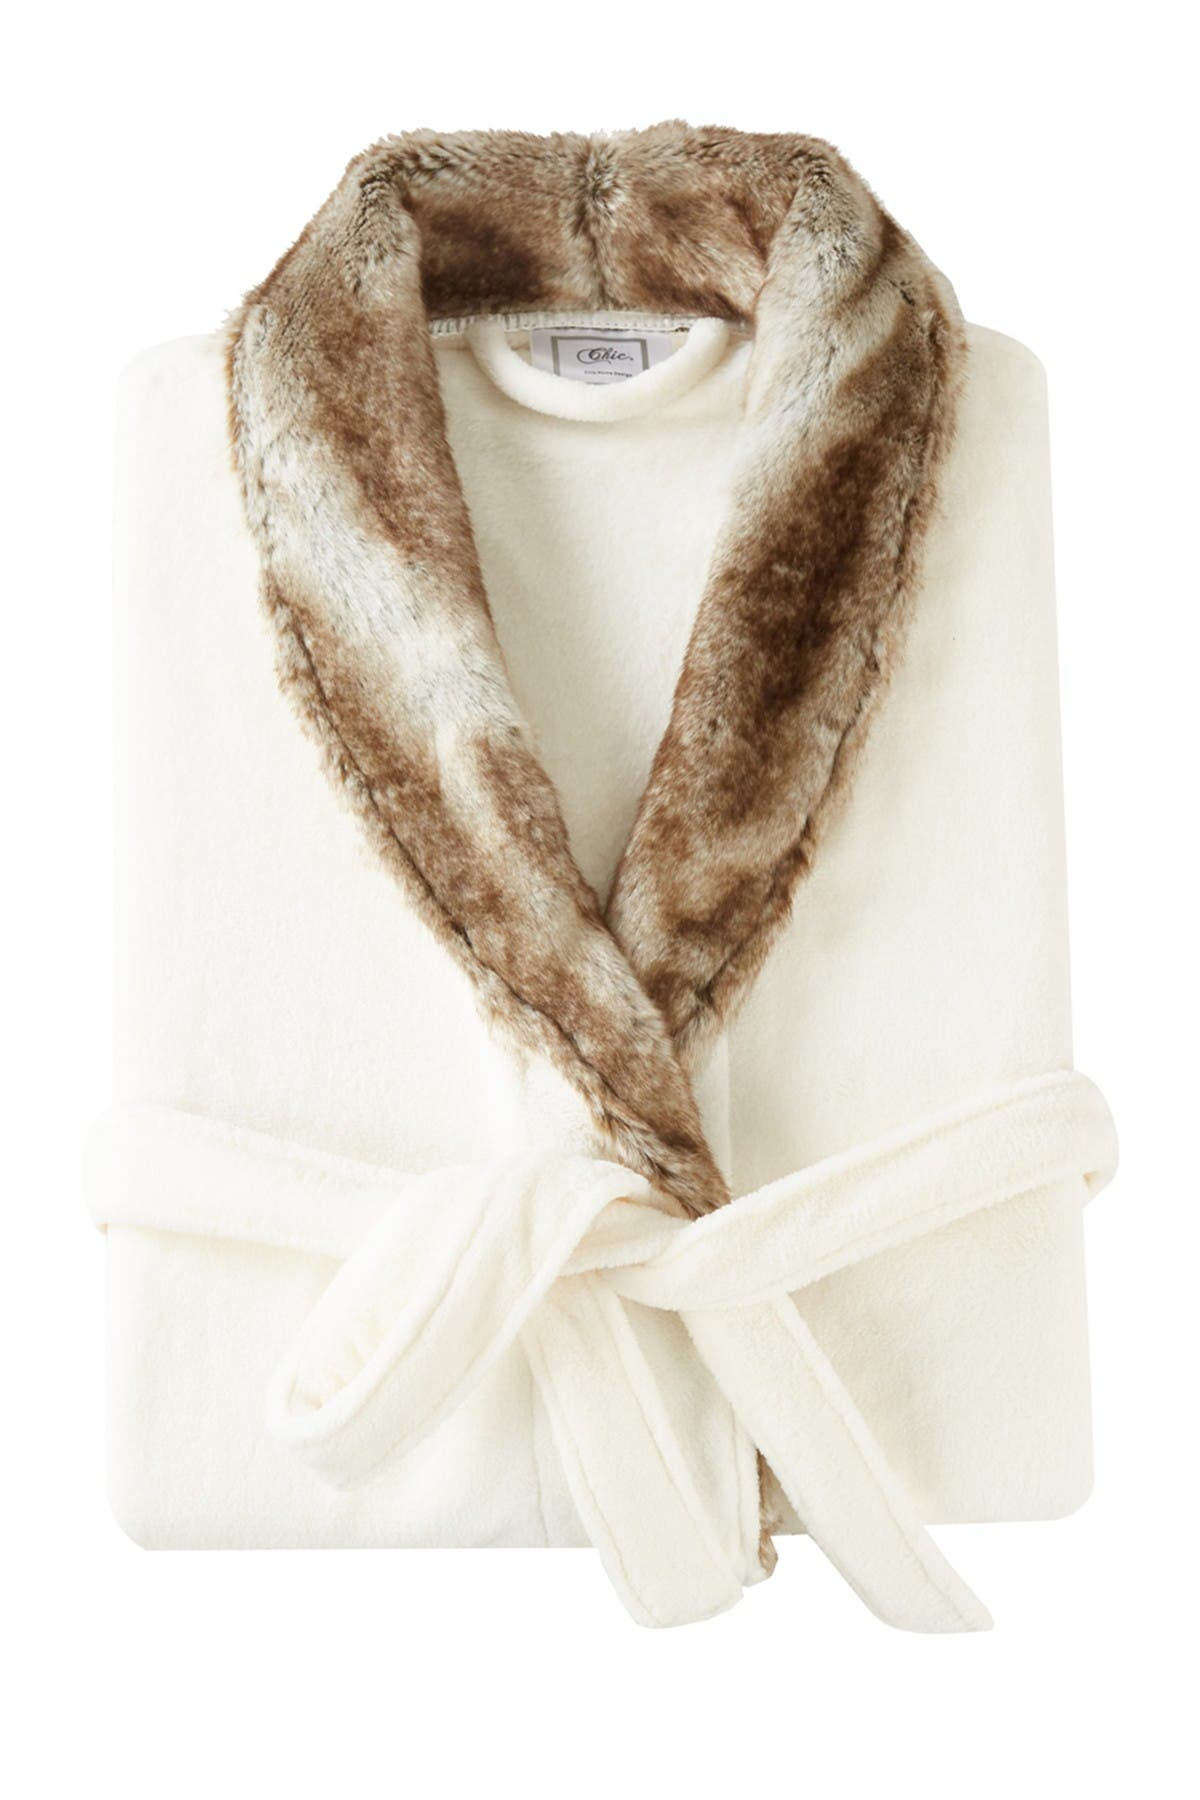 Chic Home Bedding Rolo Faux Fur Trim Robe - Brown at Nordstrom Rack